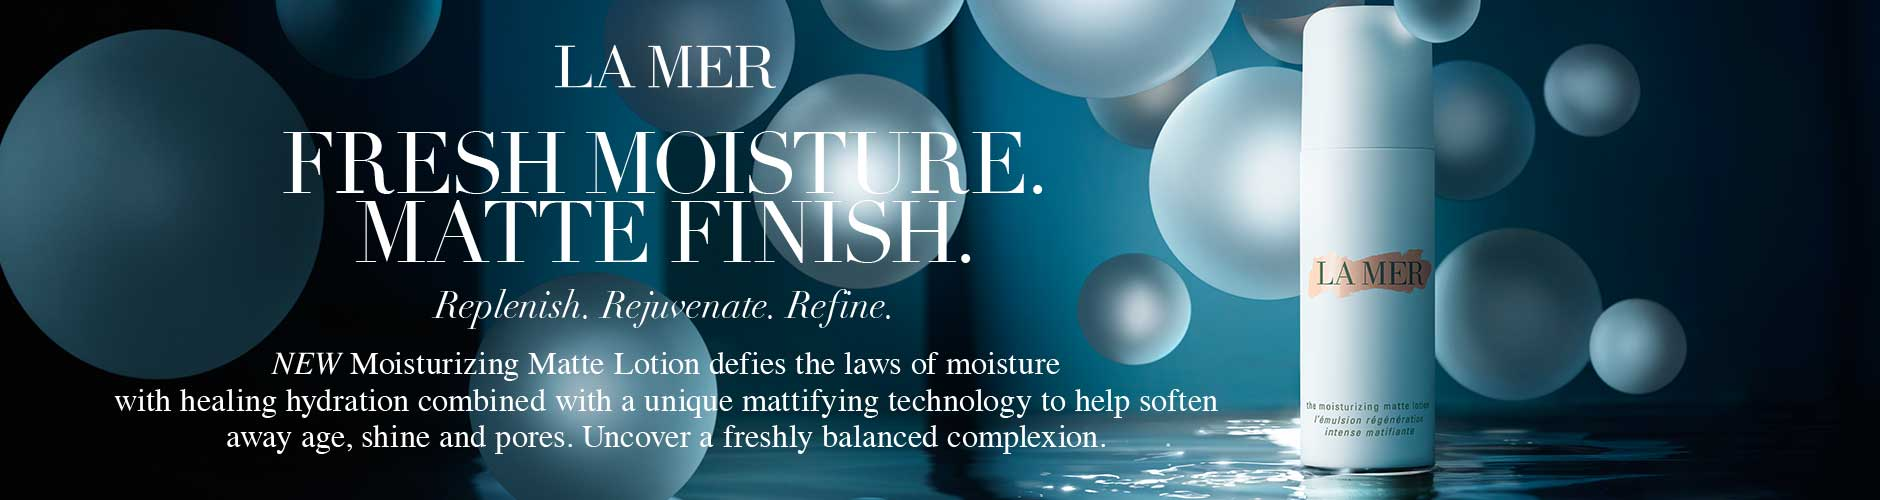 La Mer: Fresh Moisture. Matte Finish. - Replenish. Rejuvenate. Refine.